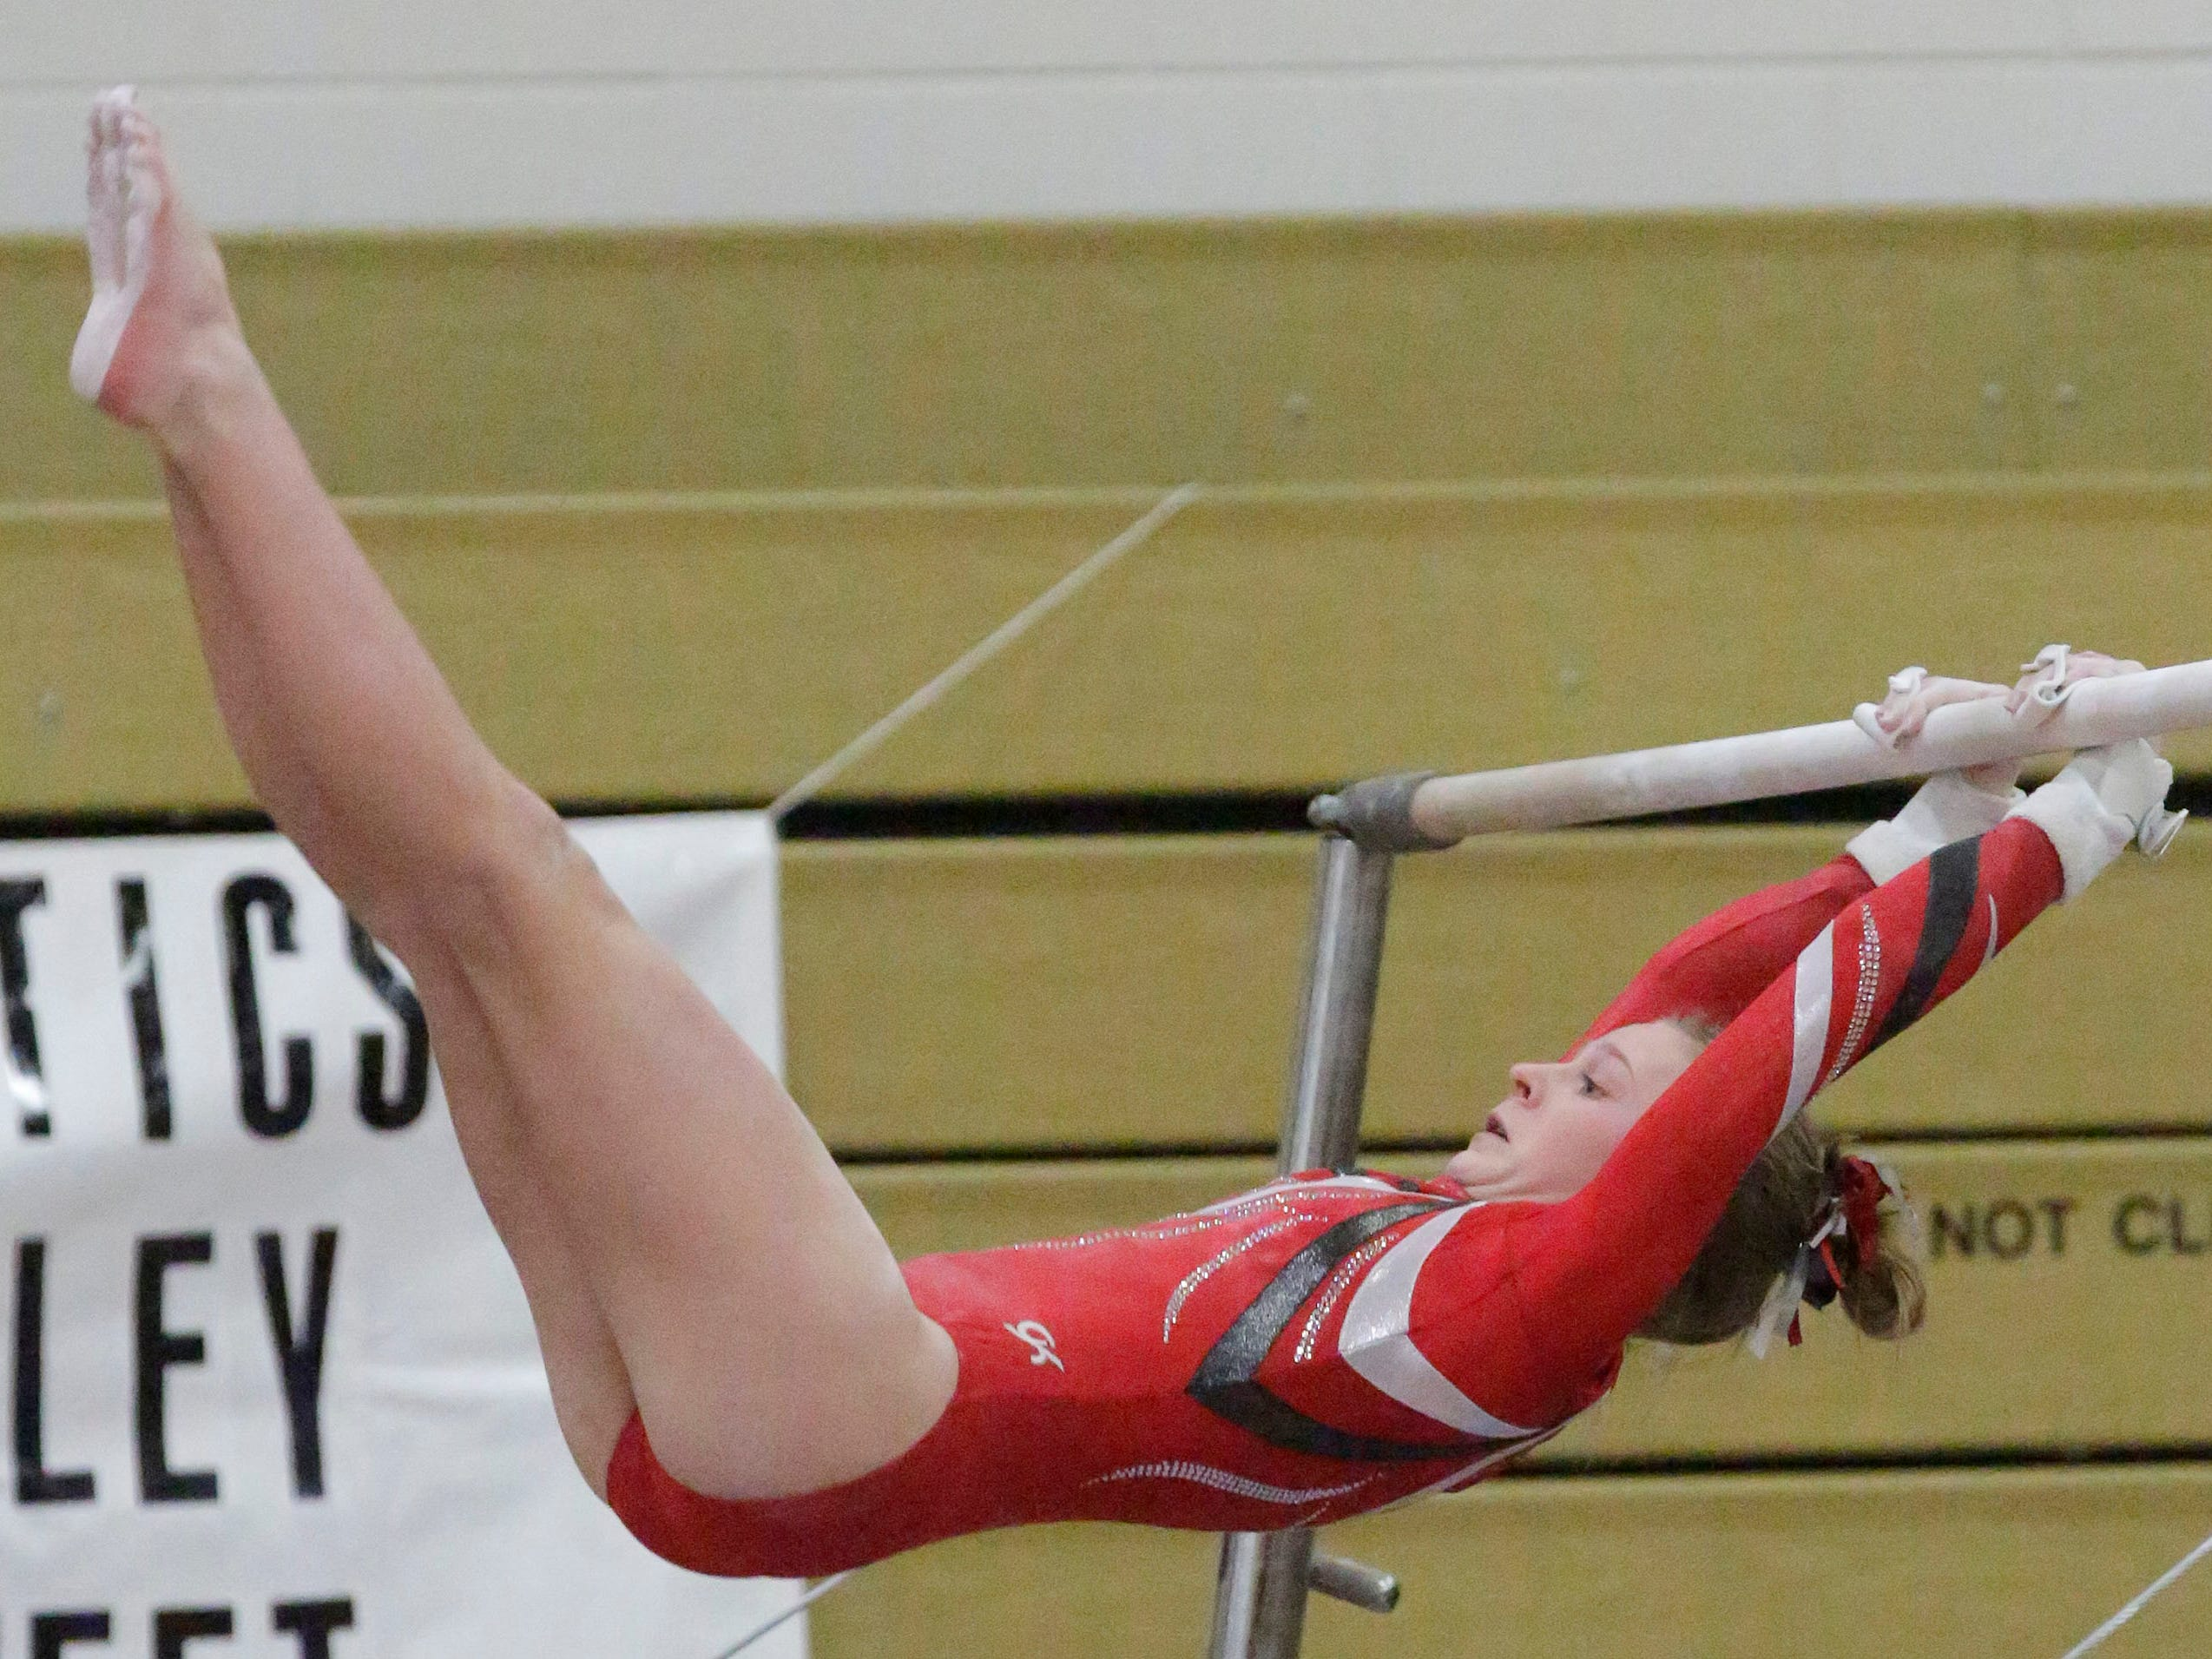 Manitowoc Lincoln's Caroline Ramminger works her bars routine at the WIAA Eastern Valley Conference Gymnastics Meet at Sheboygan South, Friday, February 15, 2019, in Sheboygan, Wis.